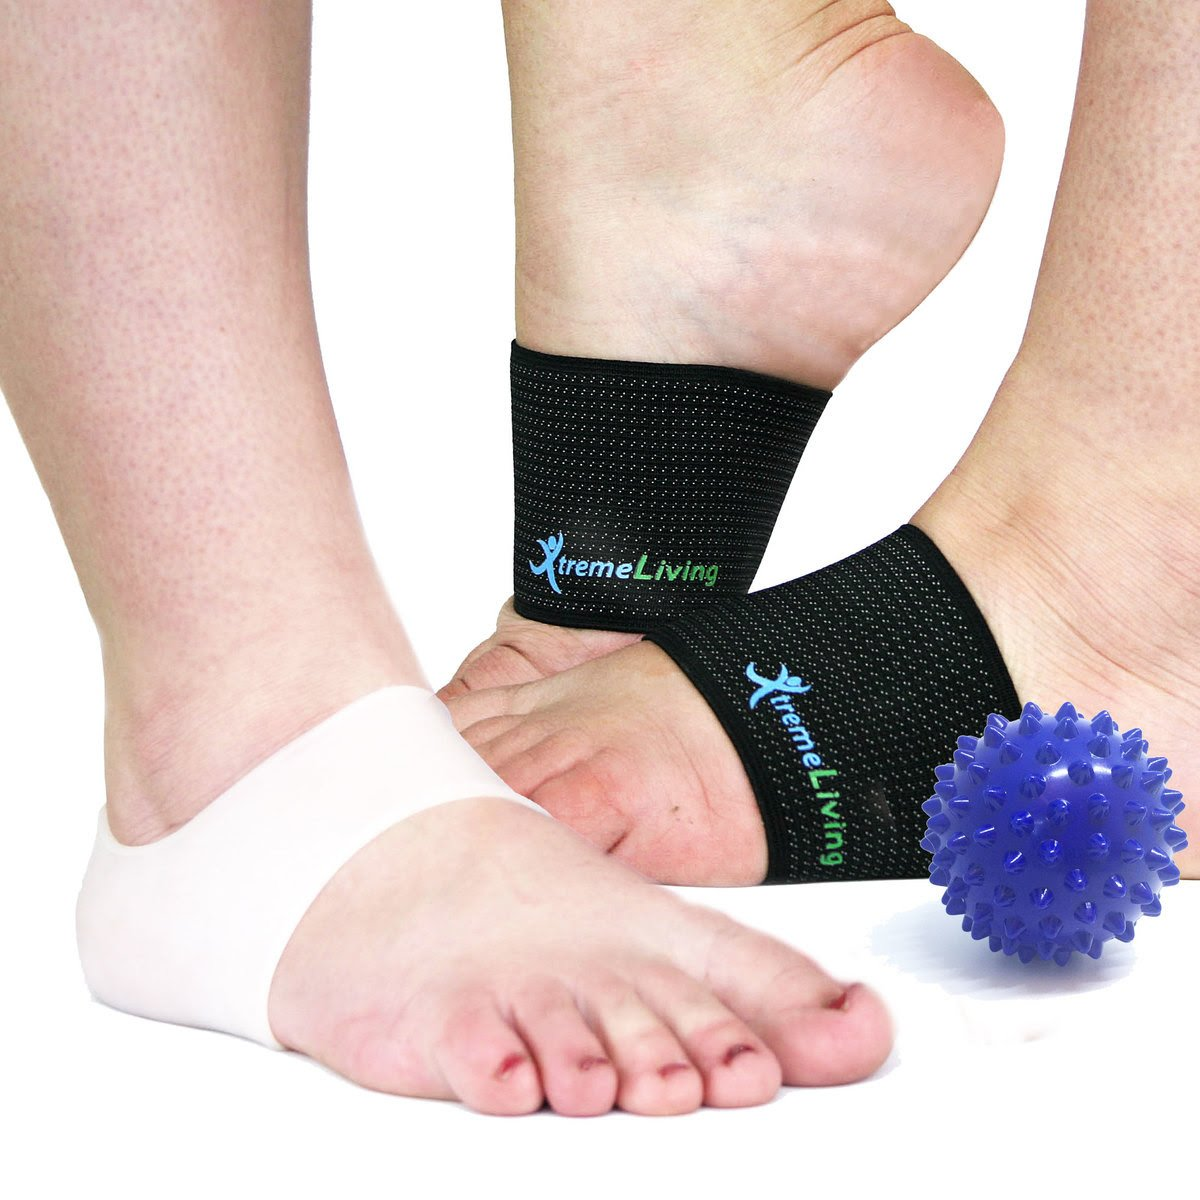 Plantar Fasciitis Compression Arch Support, 2 Arch Sleeves, 2 Gel Heel Sleeves, Massage Ball, 5pc Set